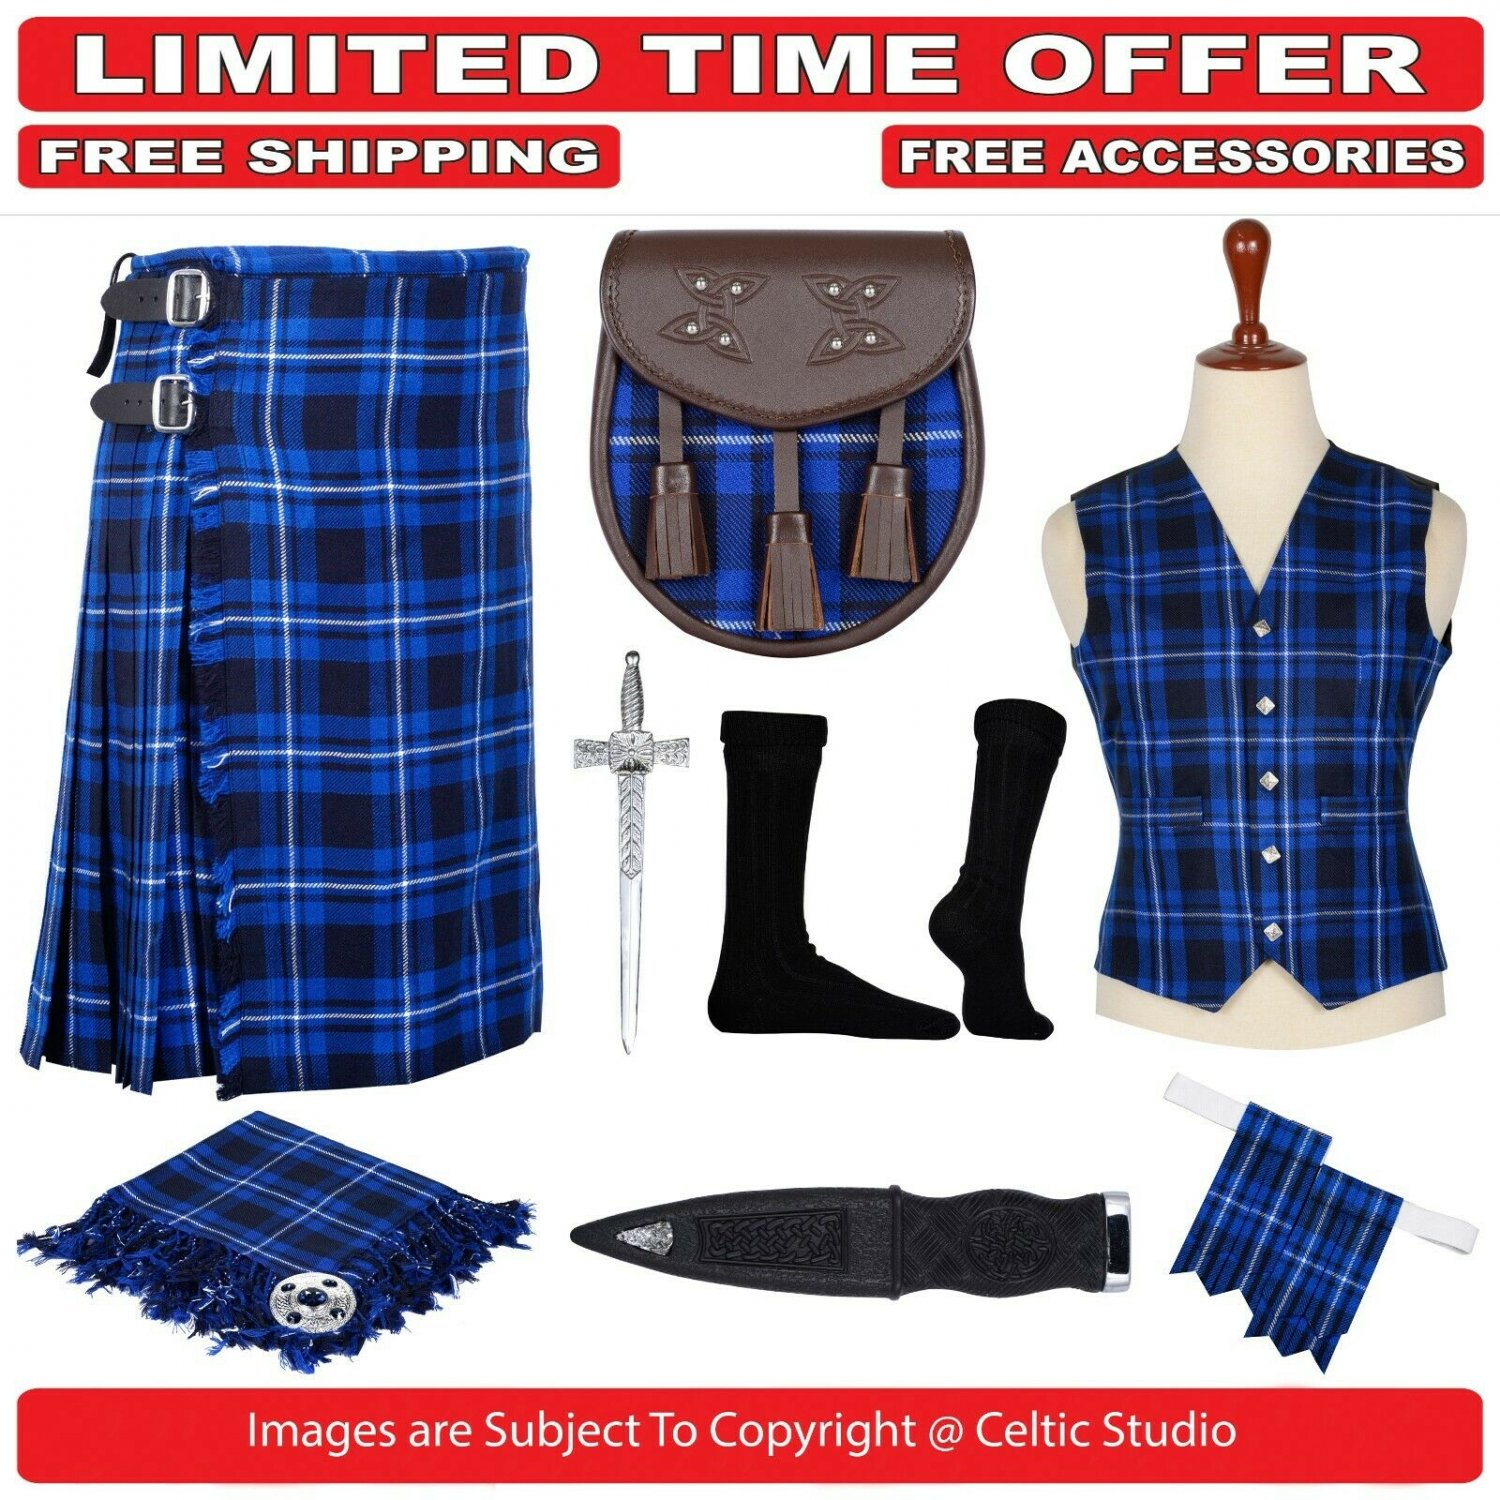 52 size Ramsey Blue Scottish Traditional Tartan Kilt With Free Shipping and 9 Accessories